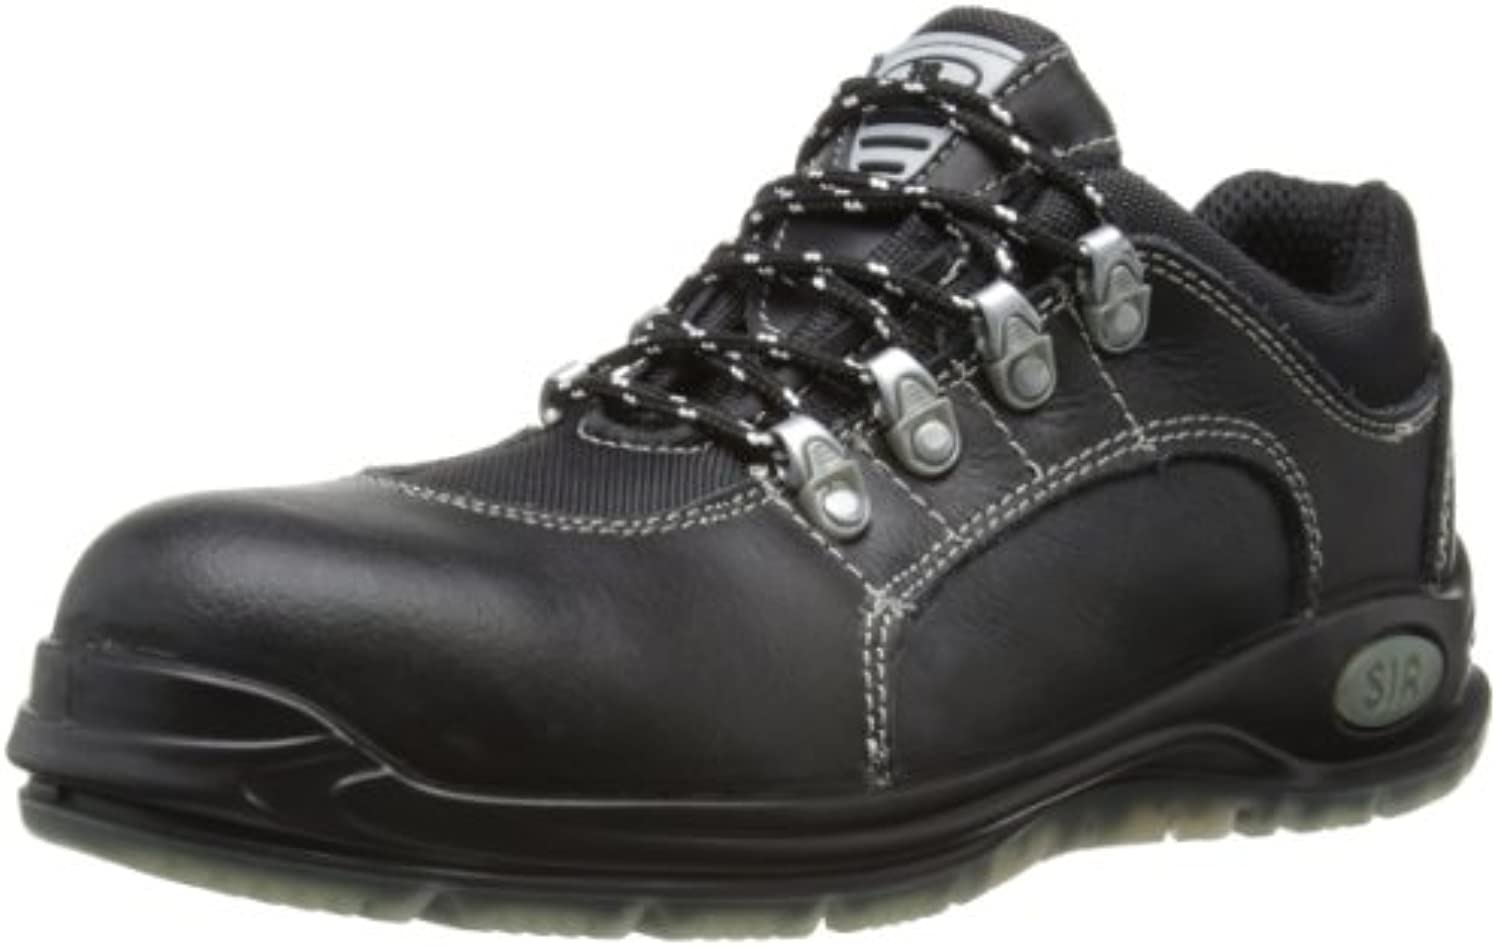 SIR Safety Zenit Shoe - Zapatos de cuero unisex